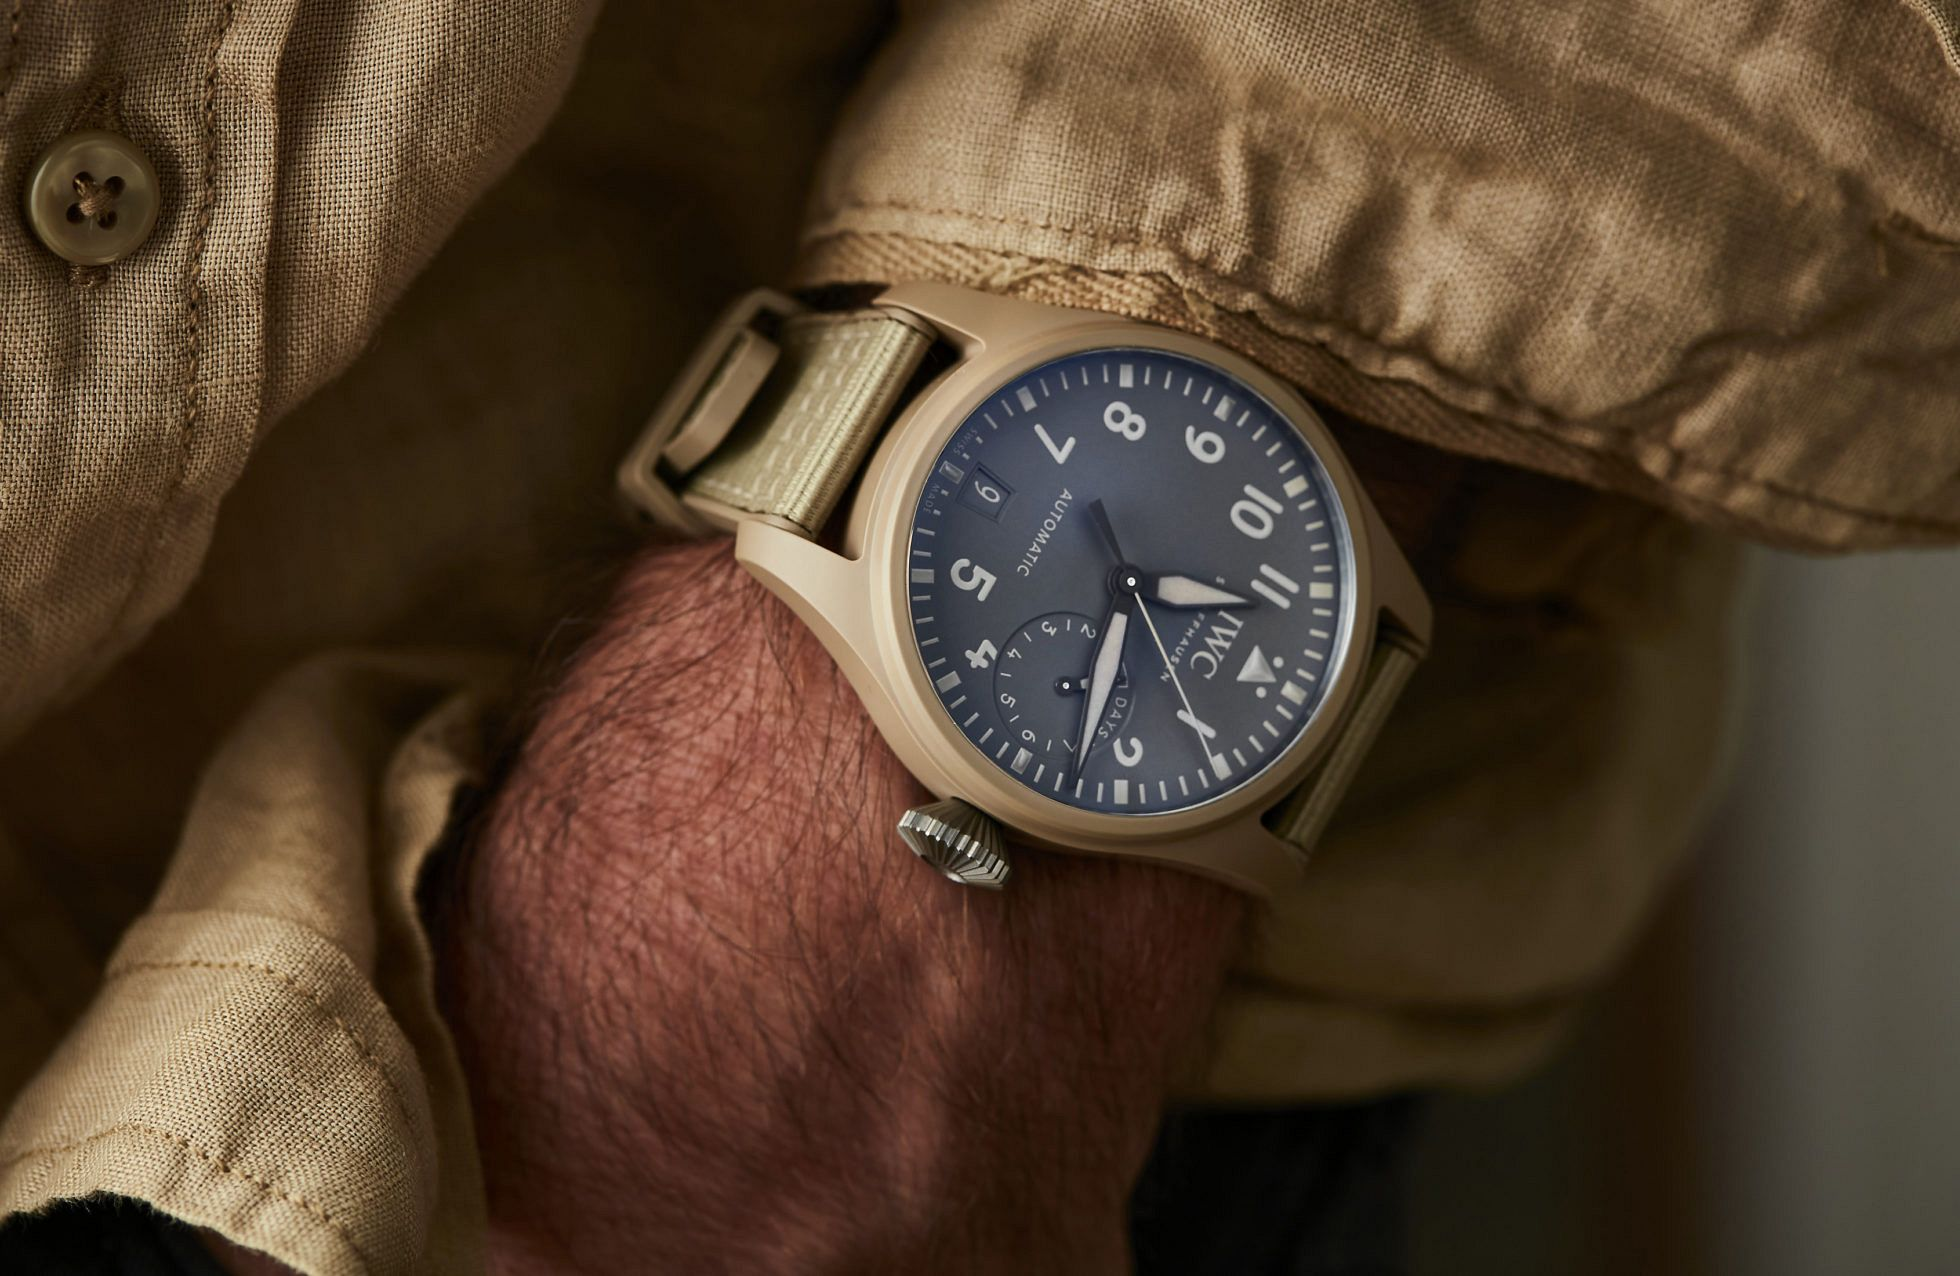 VIDEO: The IWC Pilot's collection offers fresh sizes and a wider array of choice